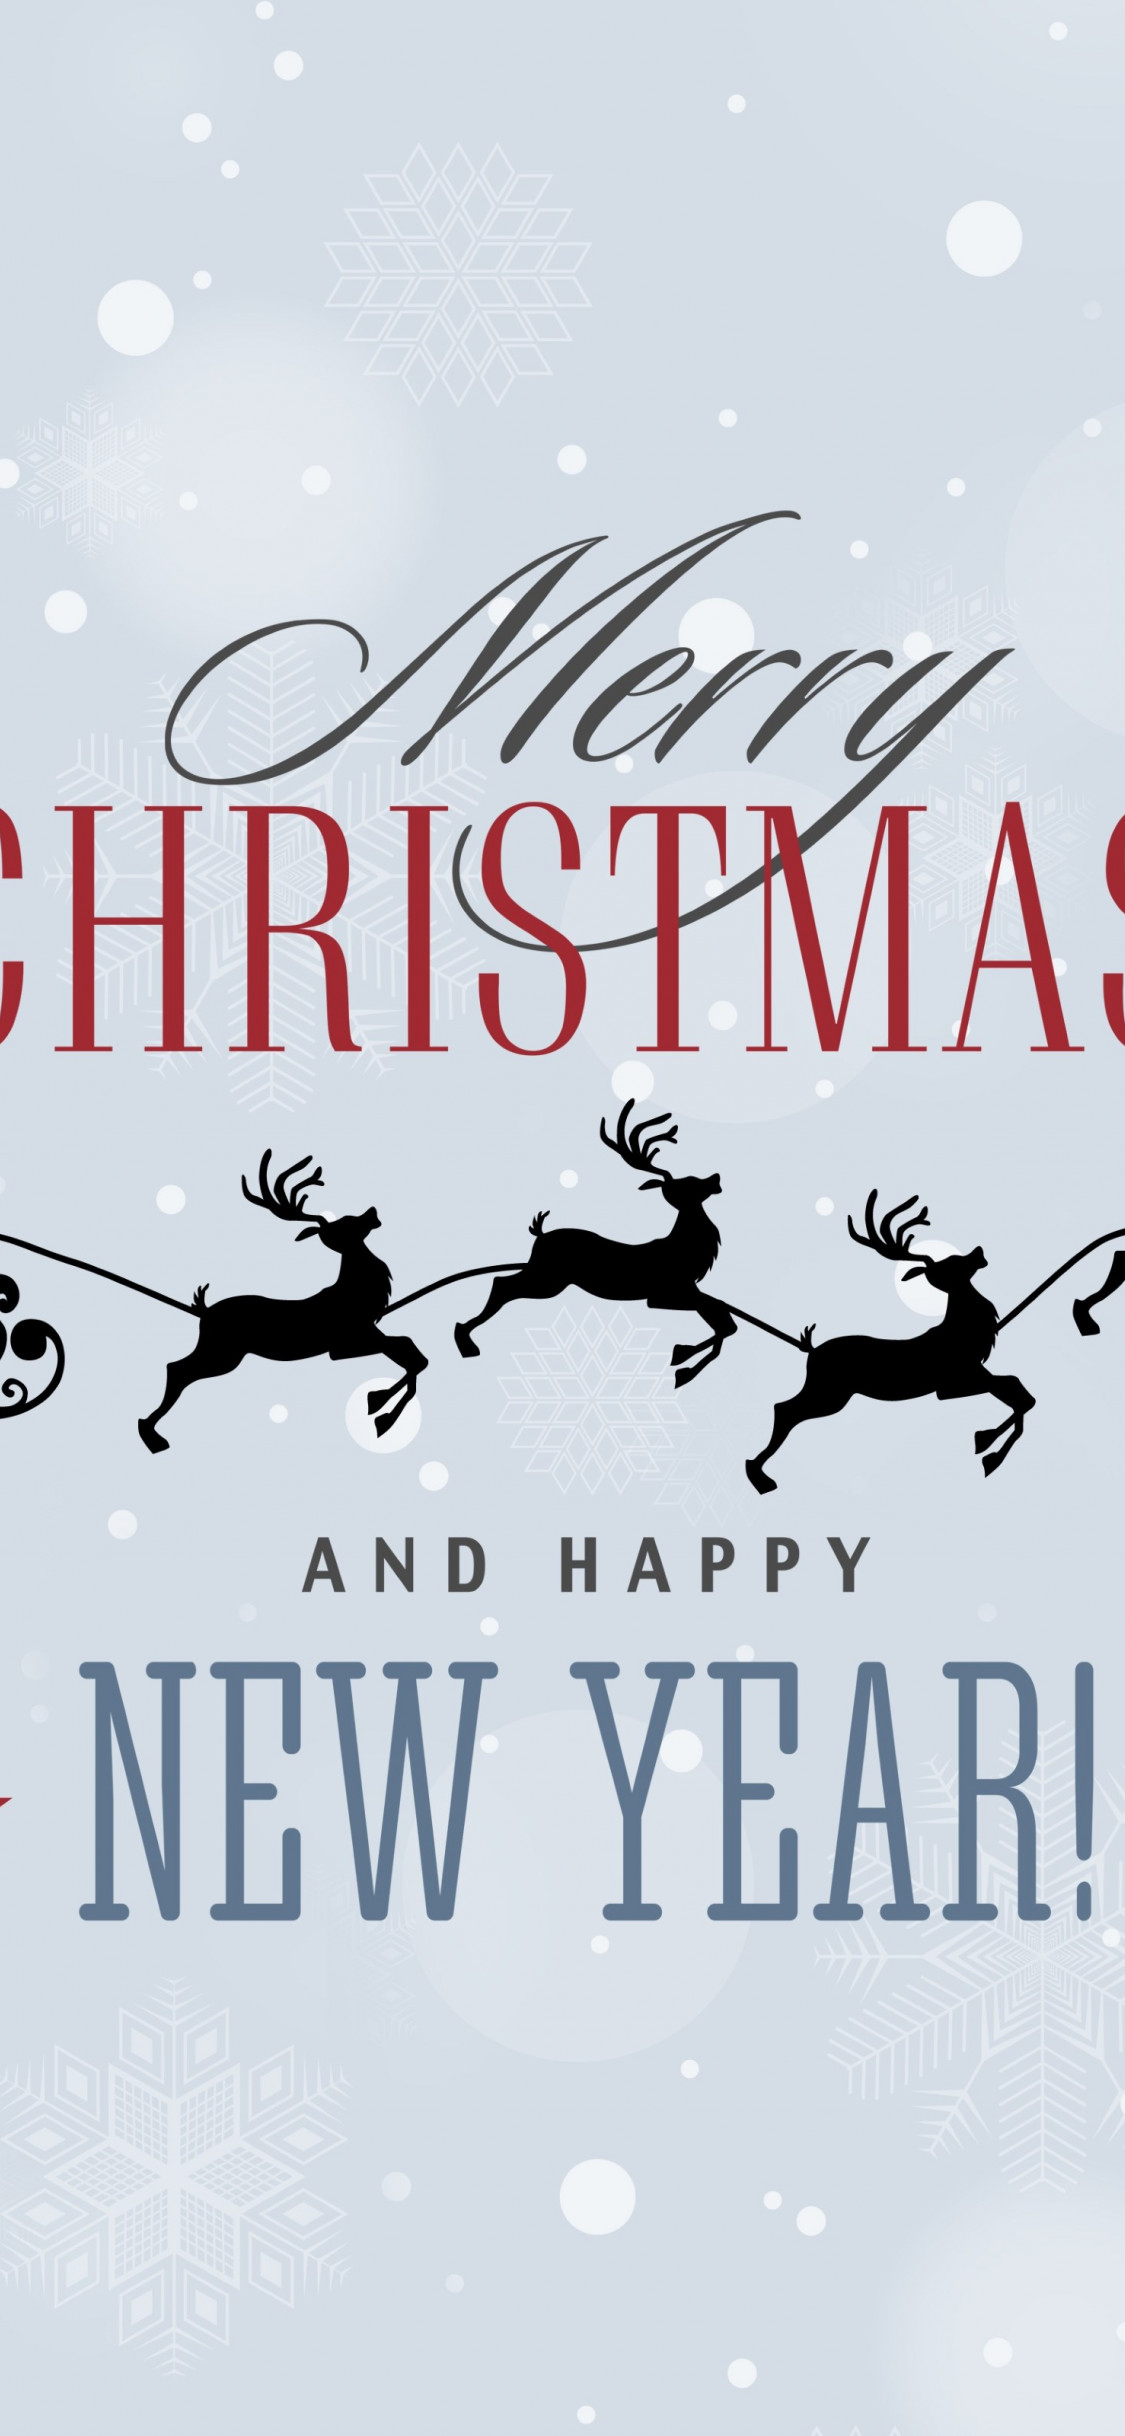 Merry Christmas and a Happy New Year wallpaper 1125x2436